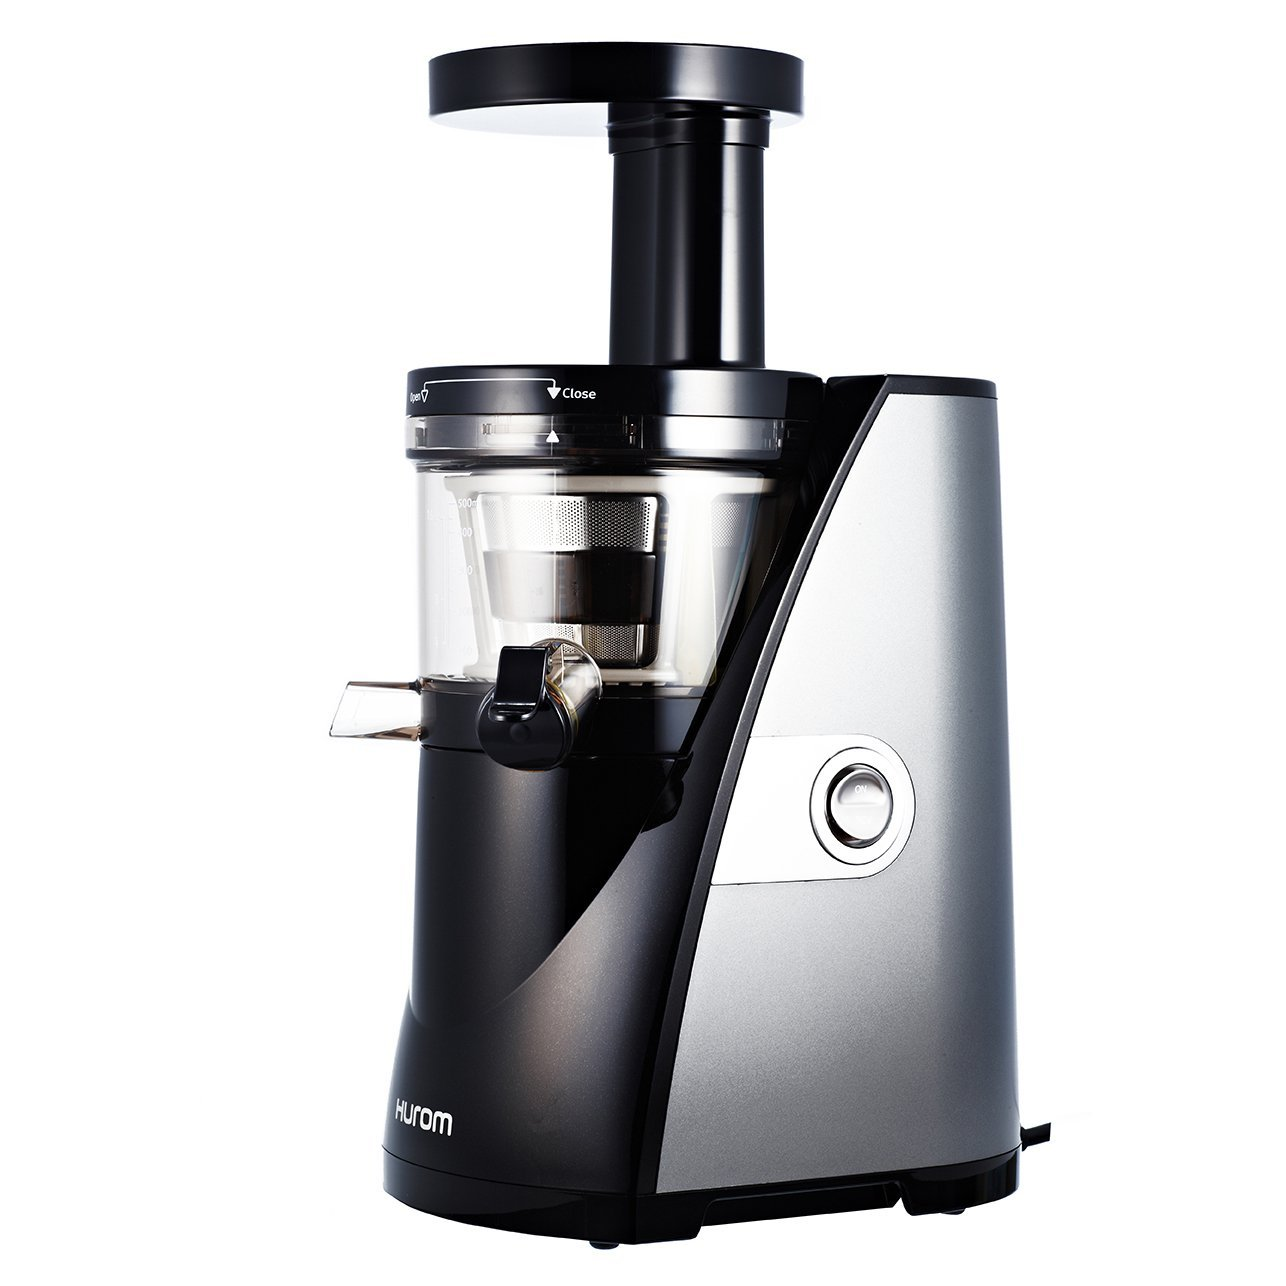 Slow Juicer Hurom Vs Omega : 5 Best Hurom Juicer Reviews UPDATED: 2018 The Home Savant